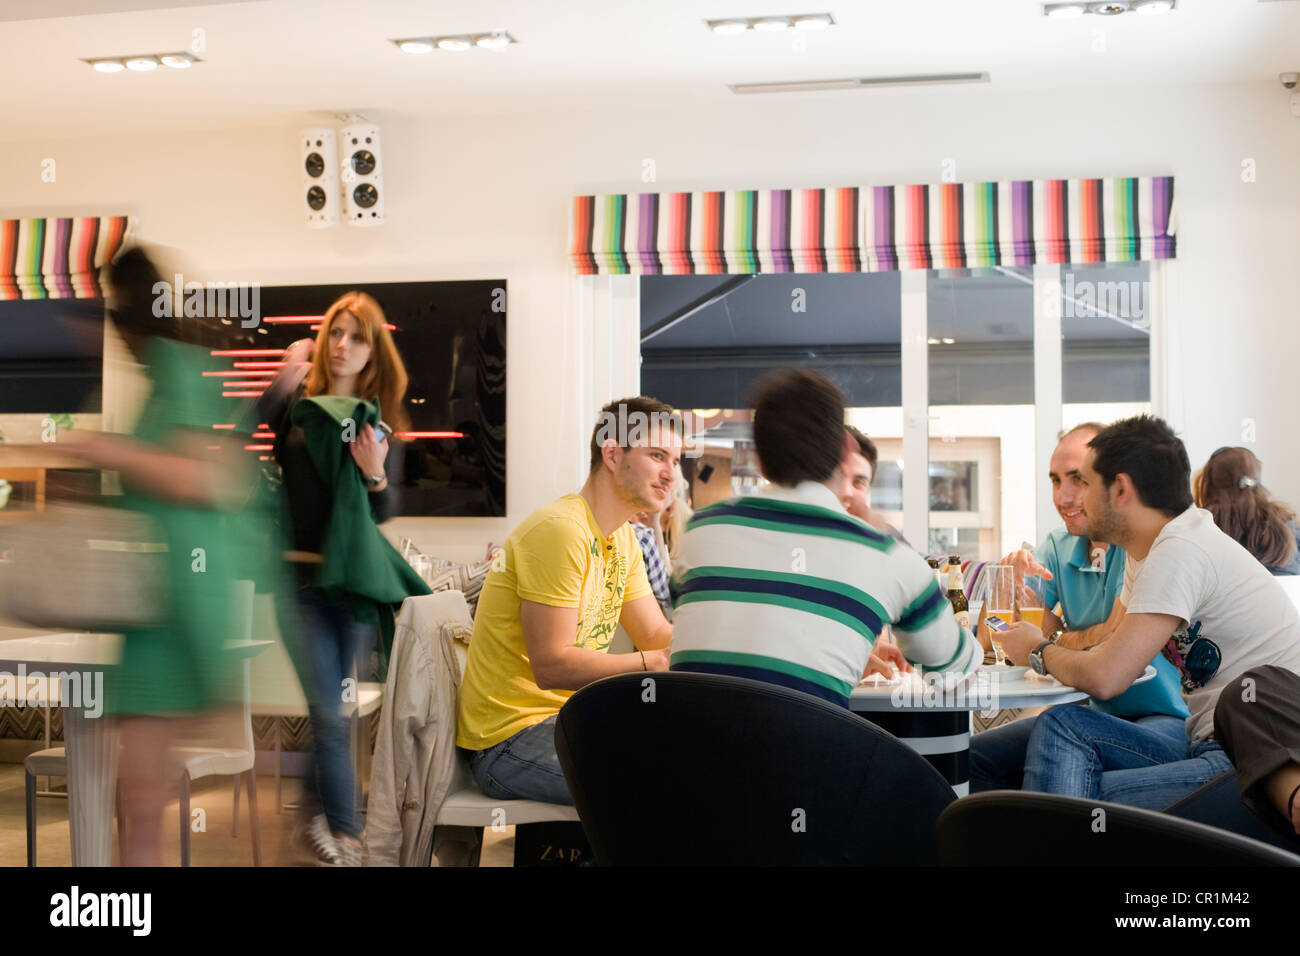 Greece, Attica, Athens, Kolonaki, Showroom Restaurant and Bar with the whole decoration in Missoni's fabric - Stock Image